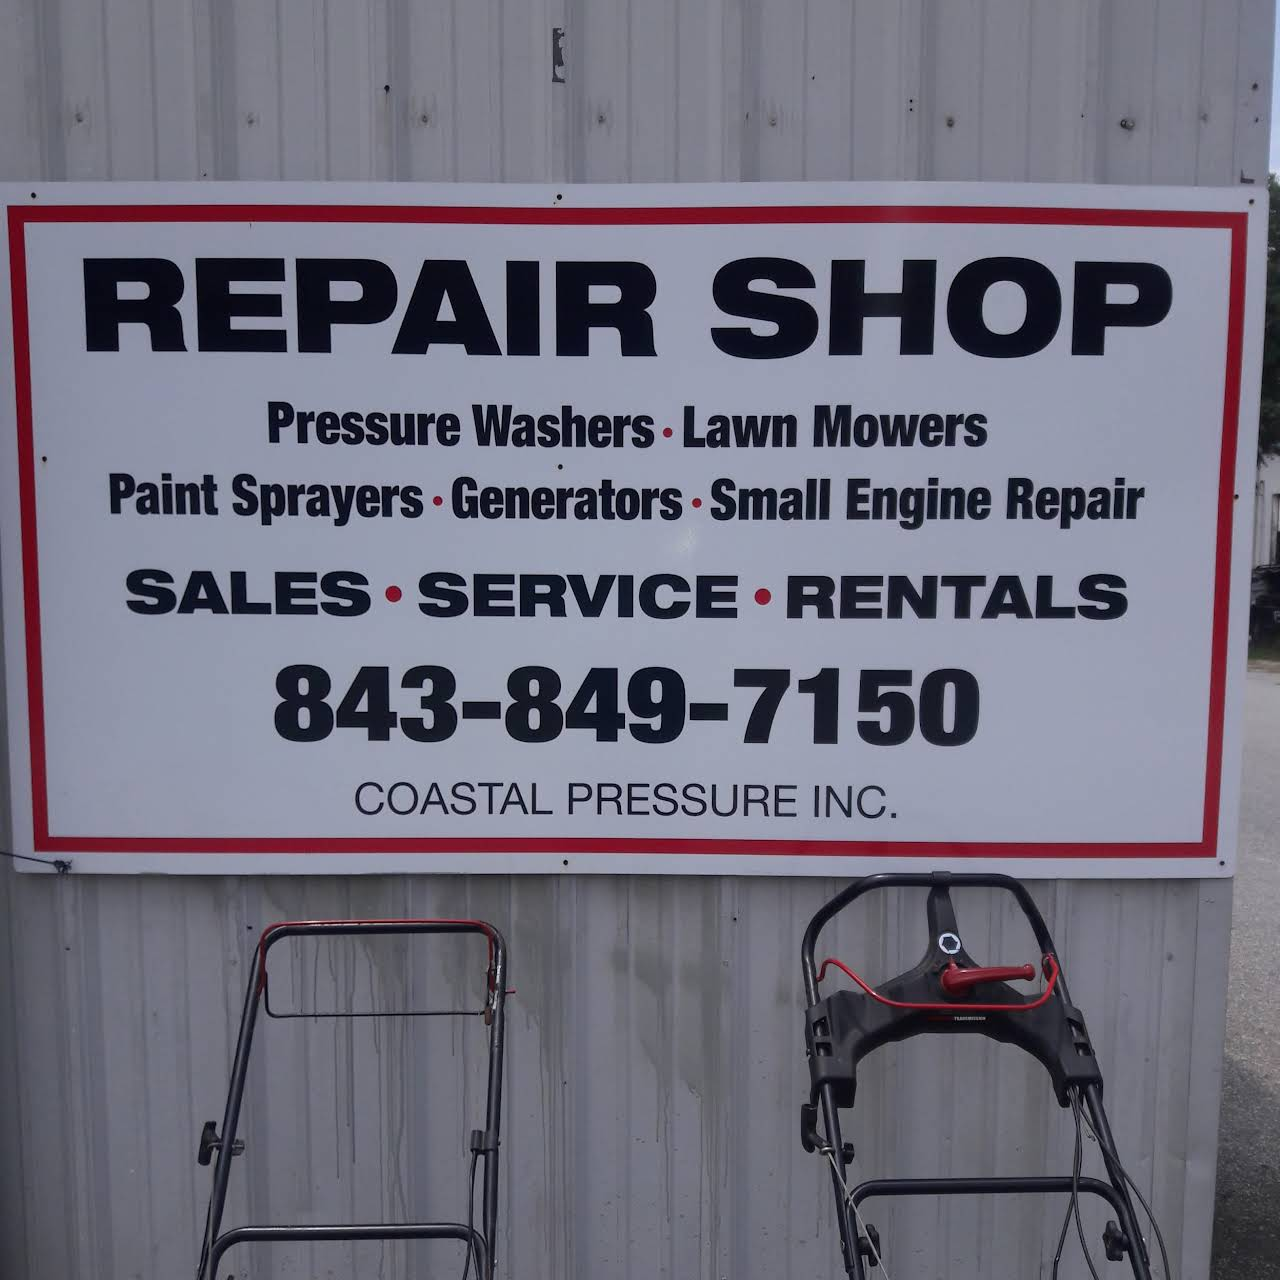 Coastal Pressure Inc - Small Engine Repair Service in Mount